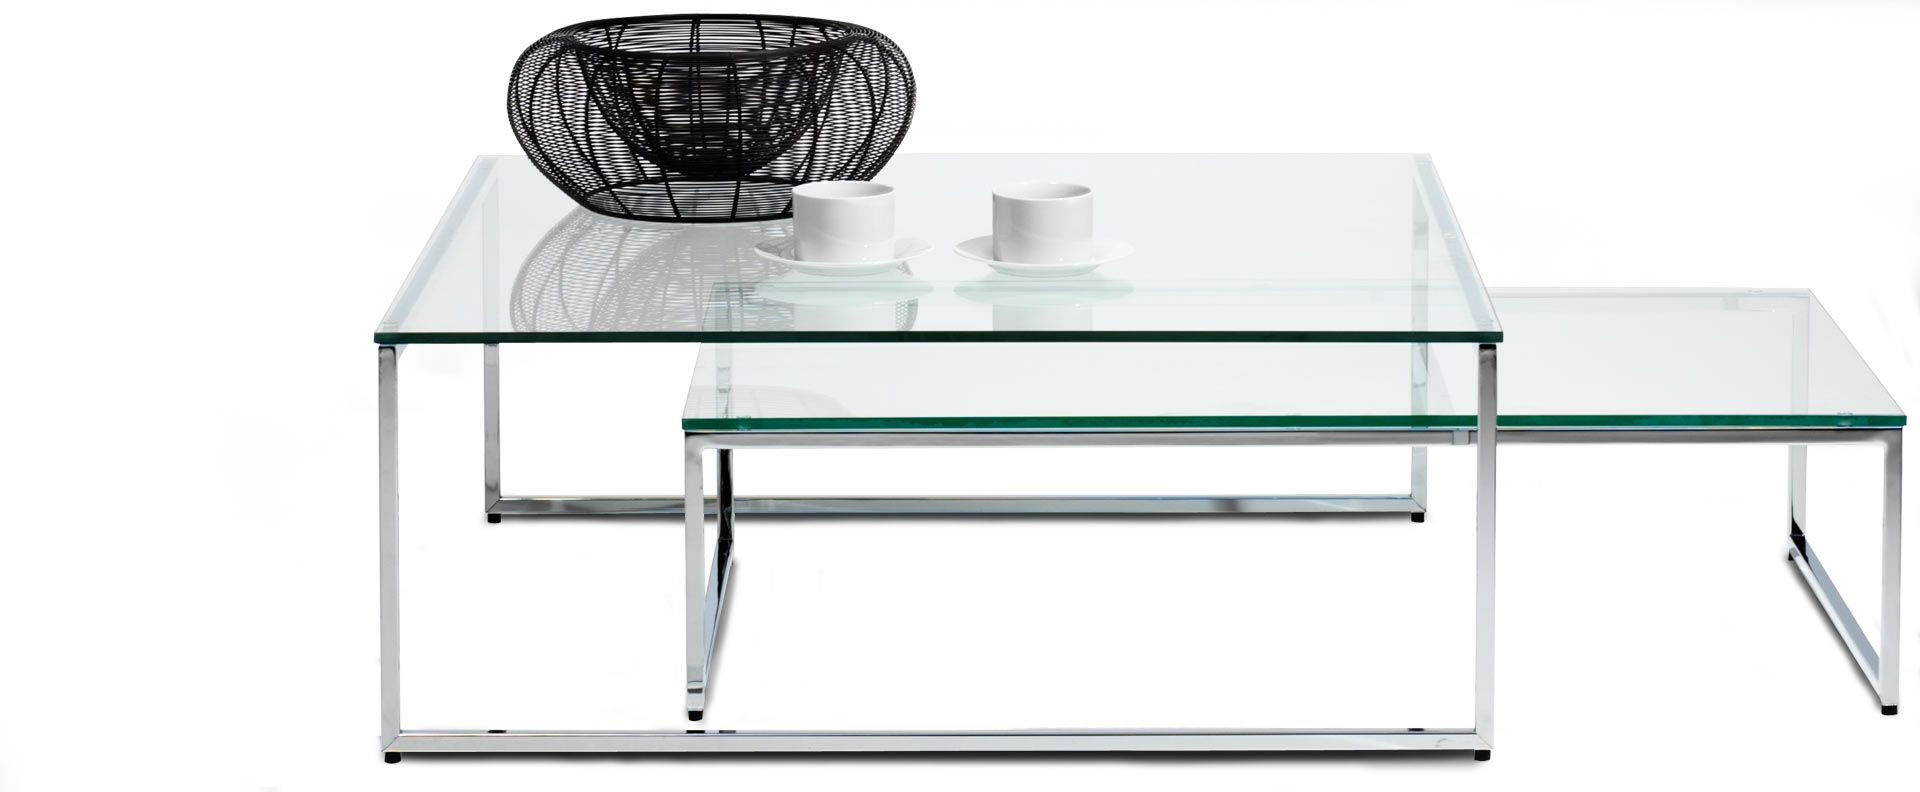 Modern Coffee Tables Contemporary Coffee Tables Boconcept Coffee Table Modern Coffee Tables Coffee Table Crate And Barrel [ 792 x 1920 Pixel ]